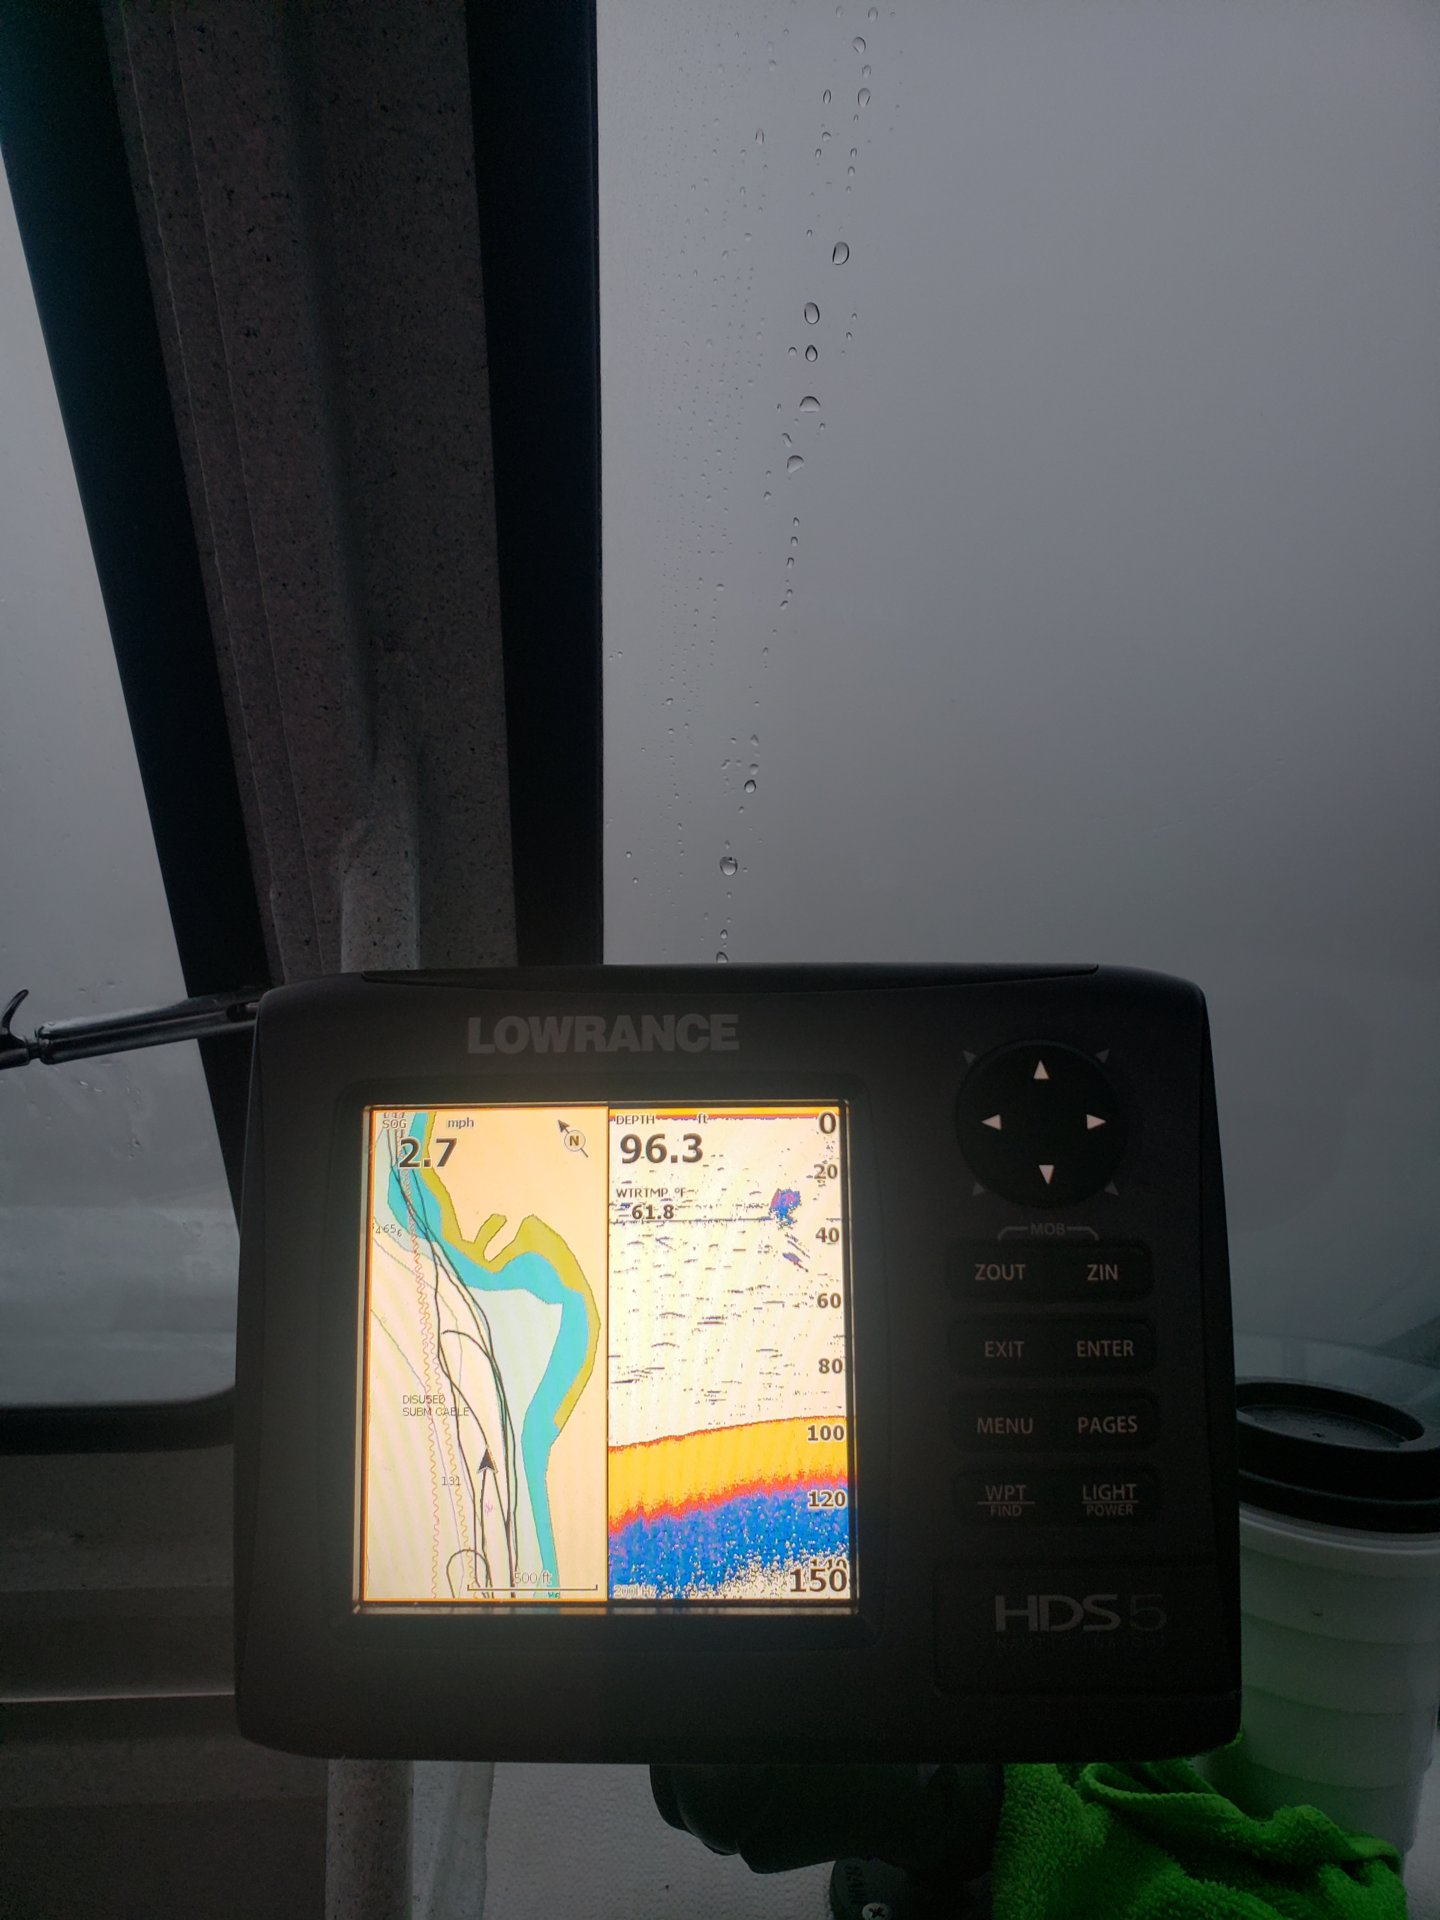 For Sale - Lowrance HDS 5 Gen II Sounder/Chart | Bloodydecks